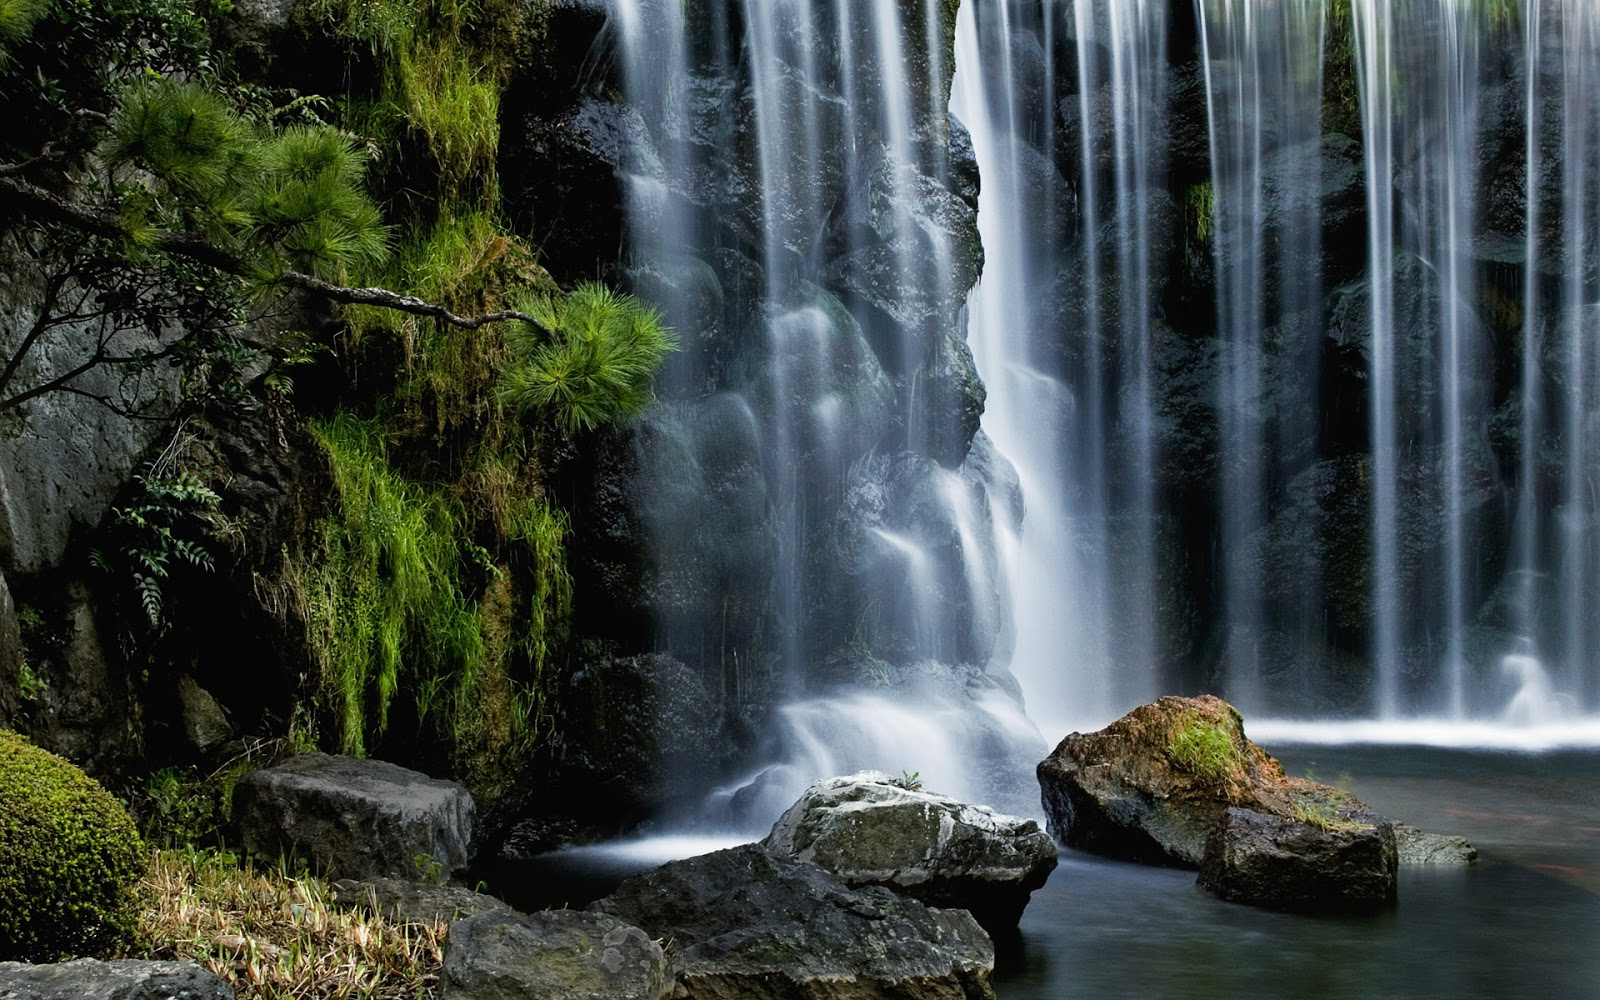 Waterfalls background wallpapers | Background Wallpapers